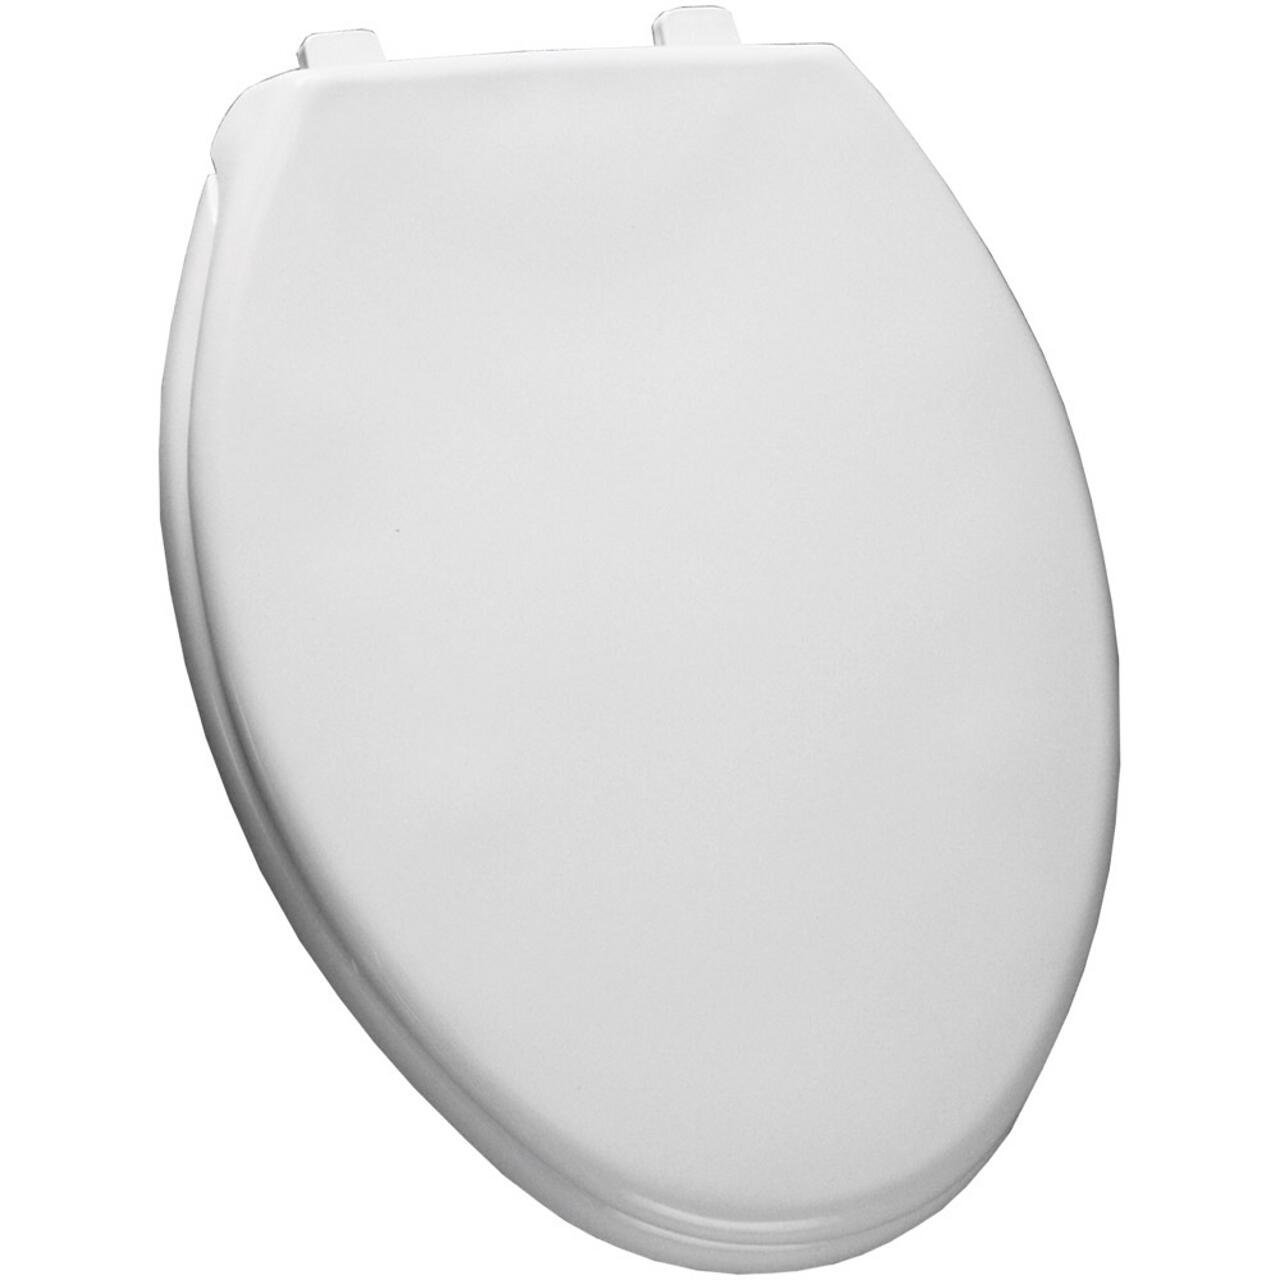 Church Bemis 380TCA 000 Elongated Toilet Seat With Cover White